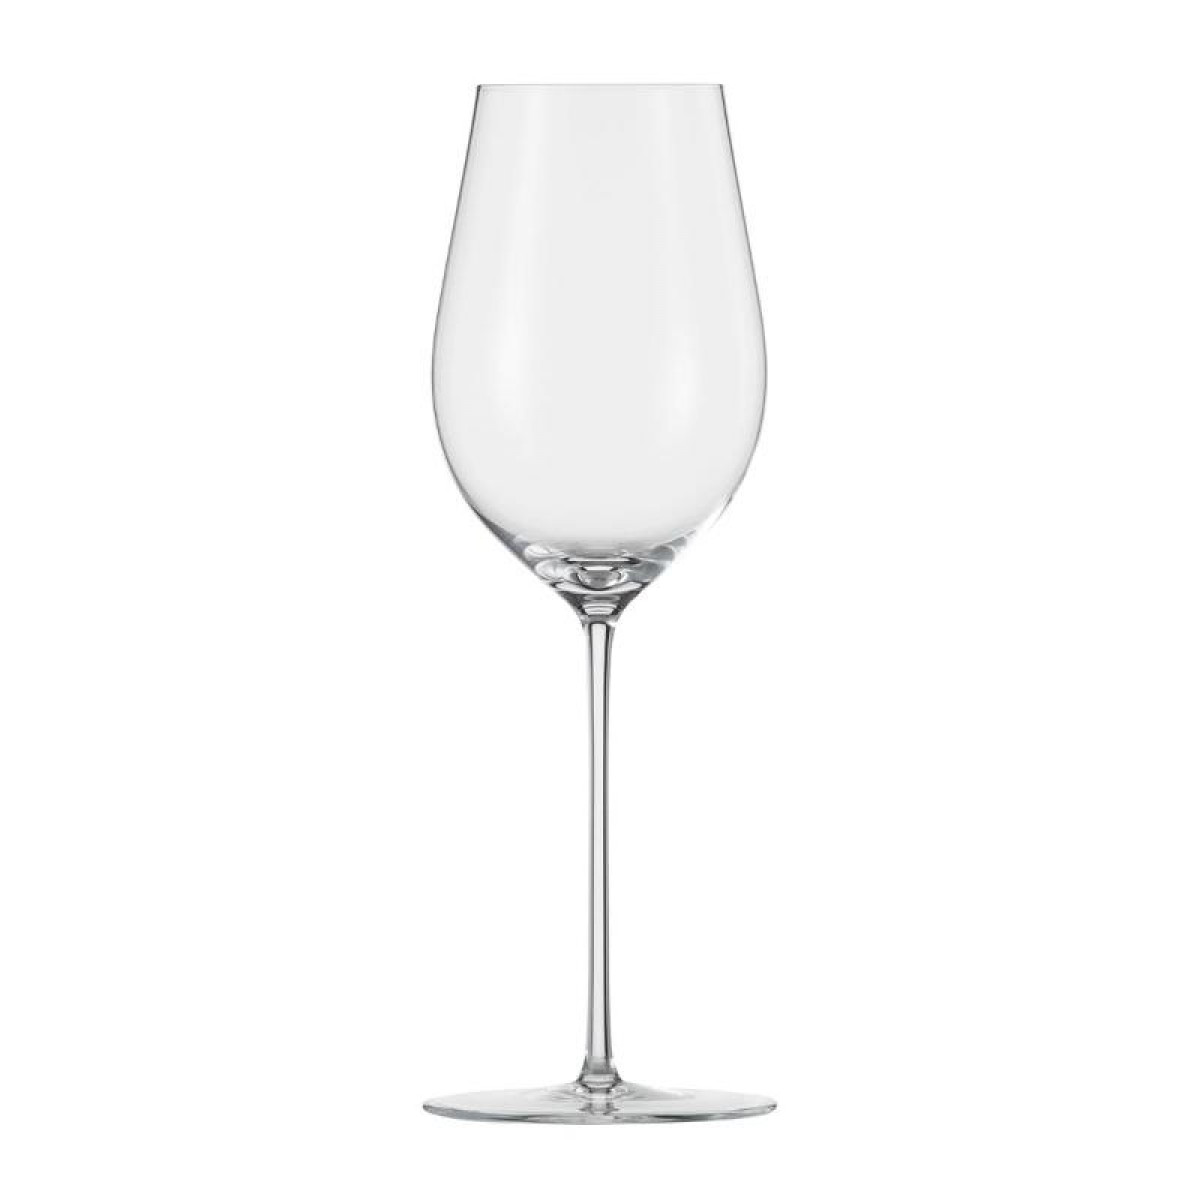 Eisch Unity Sensis plus white wine glass - in gift tube 410 ml / h: 24,2 cm